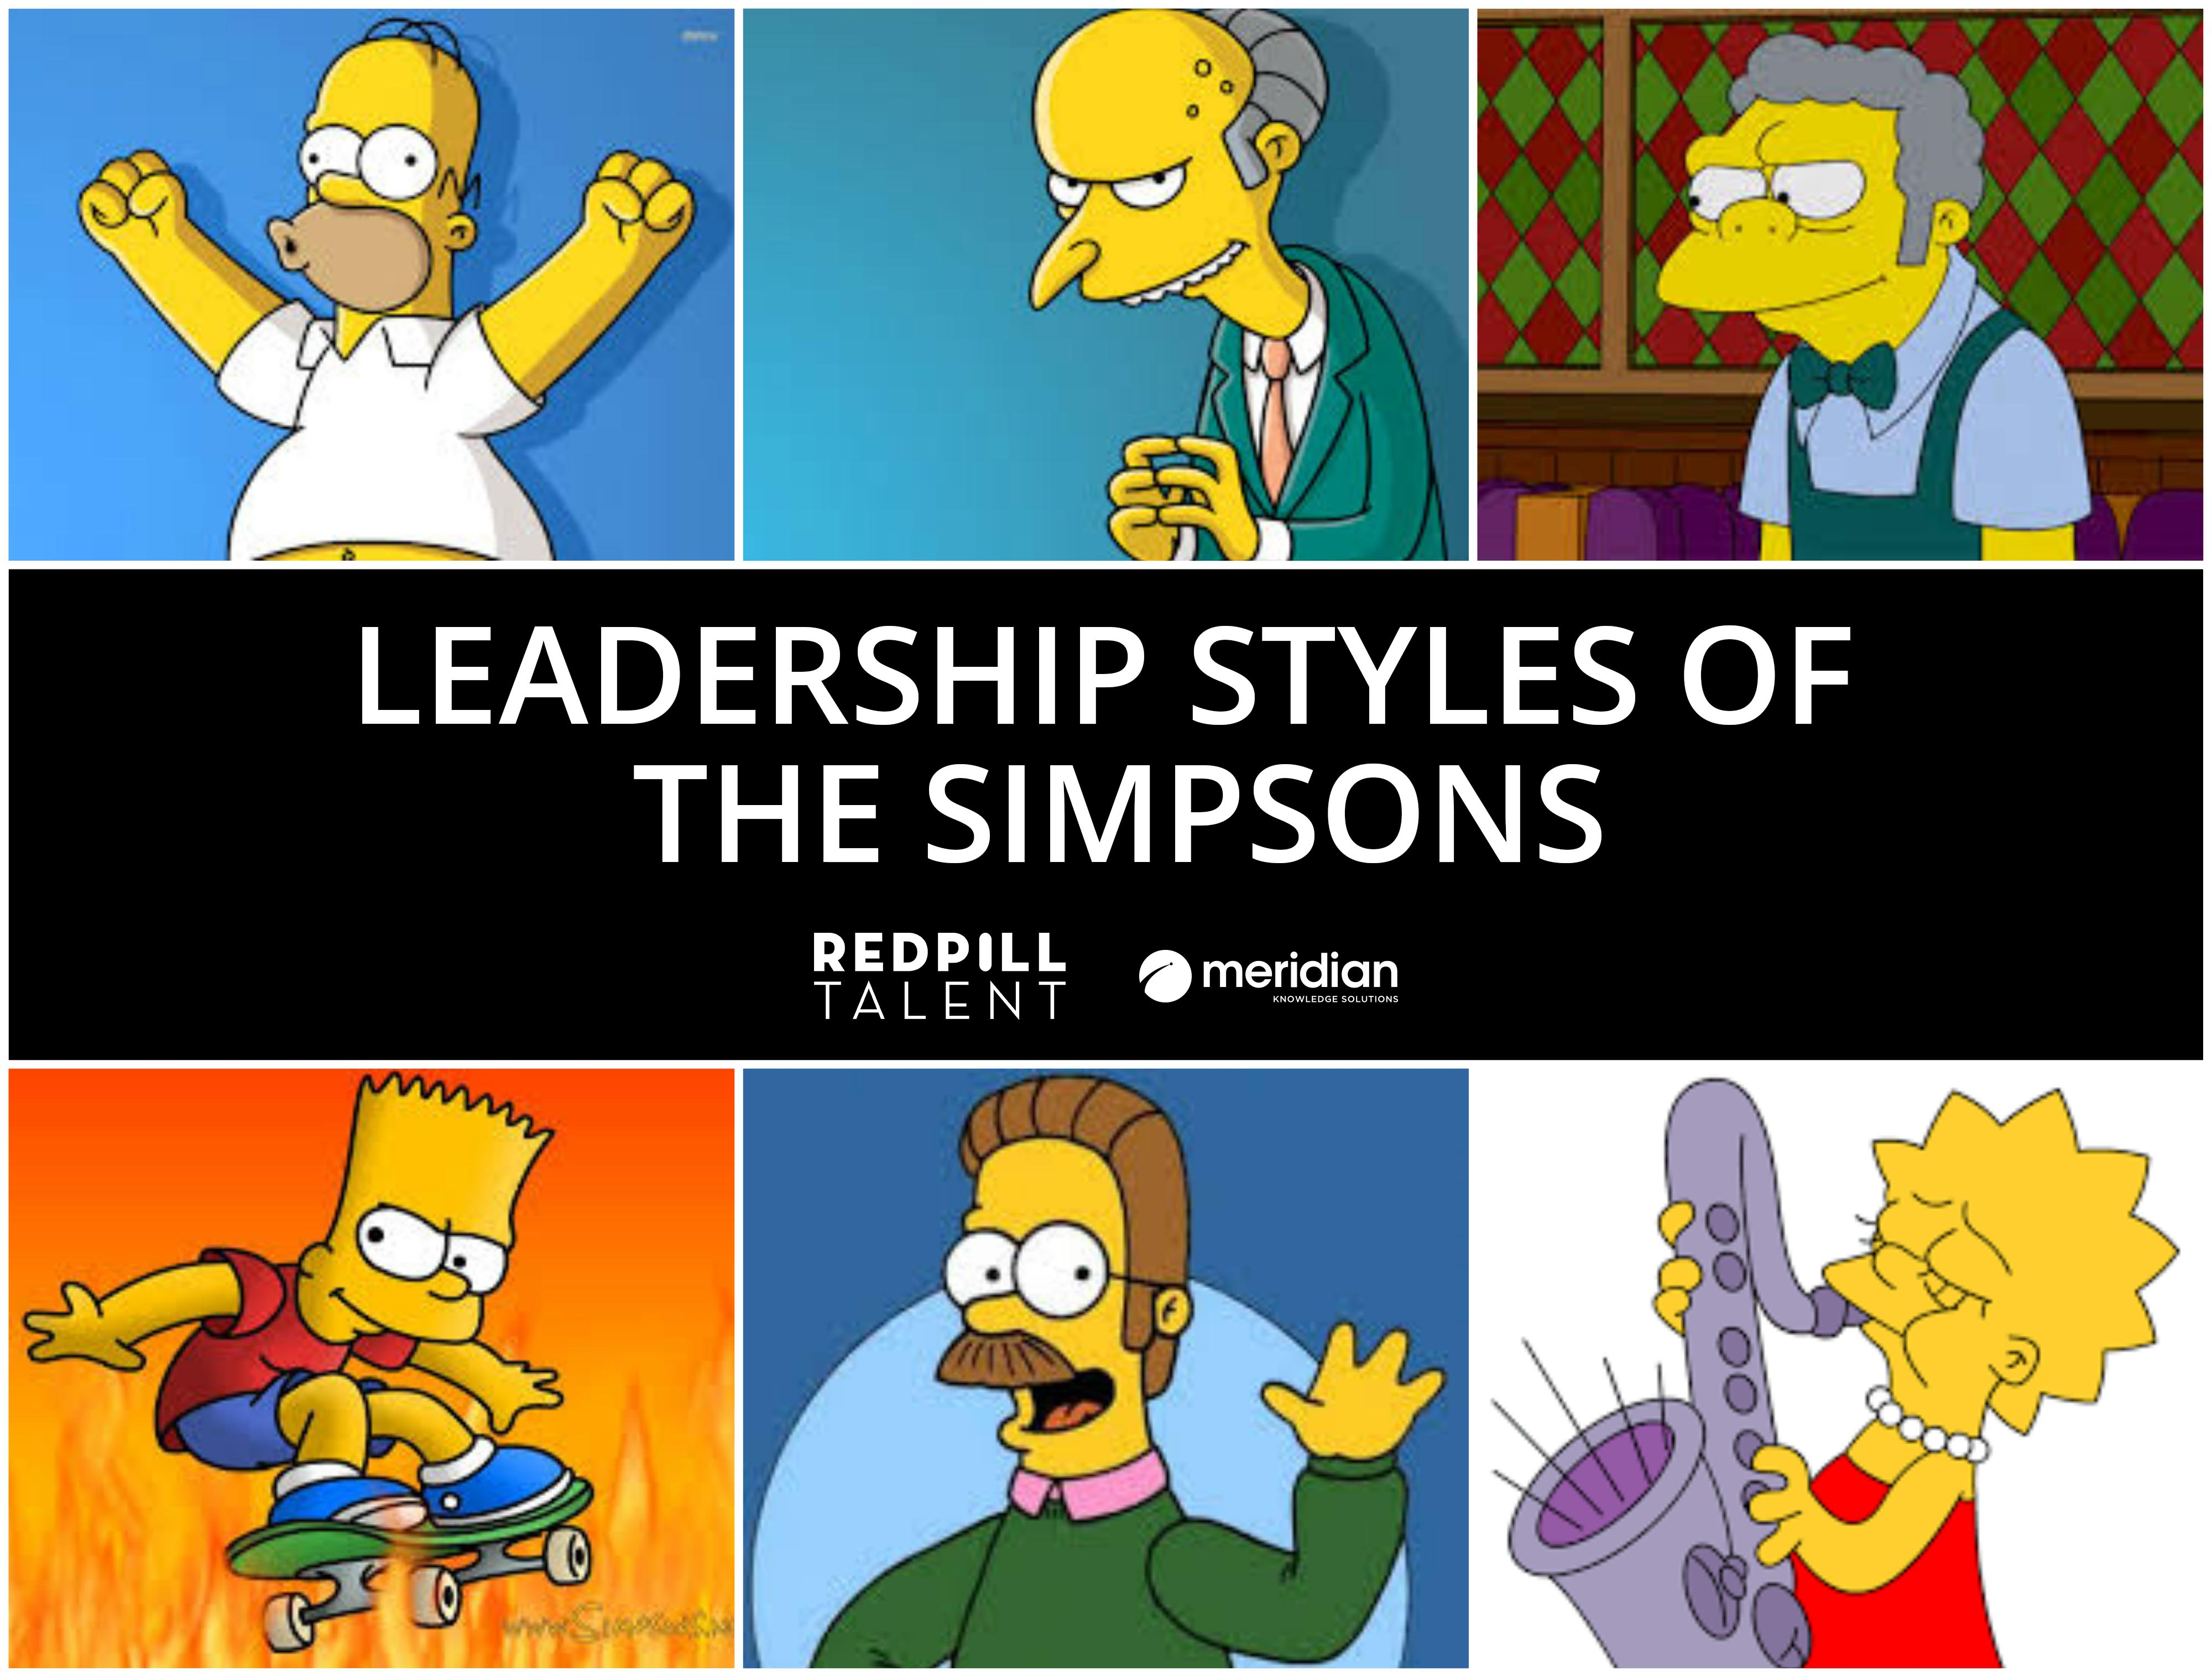 The Leadership Styles of The Simpsons